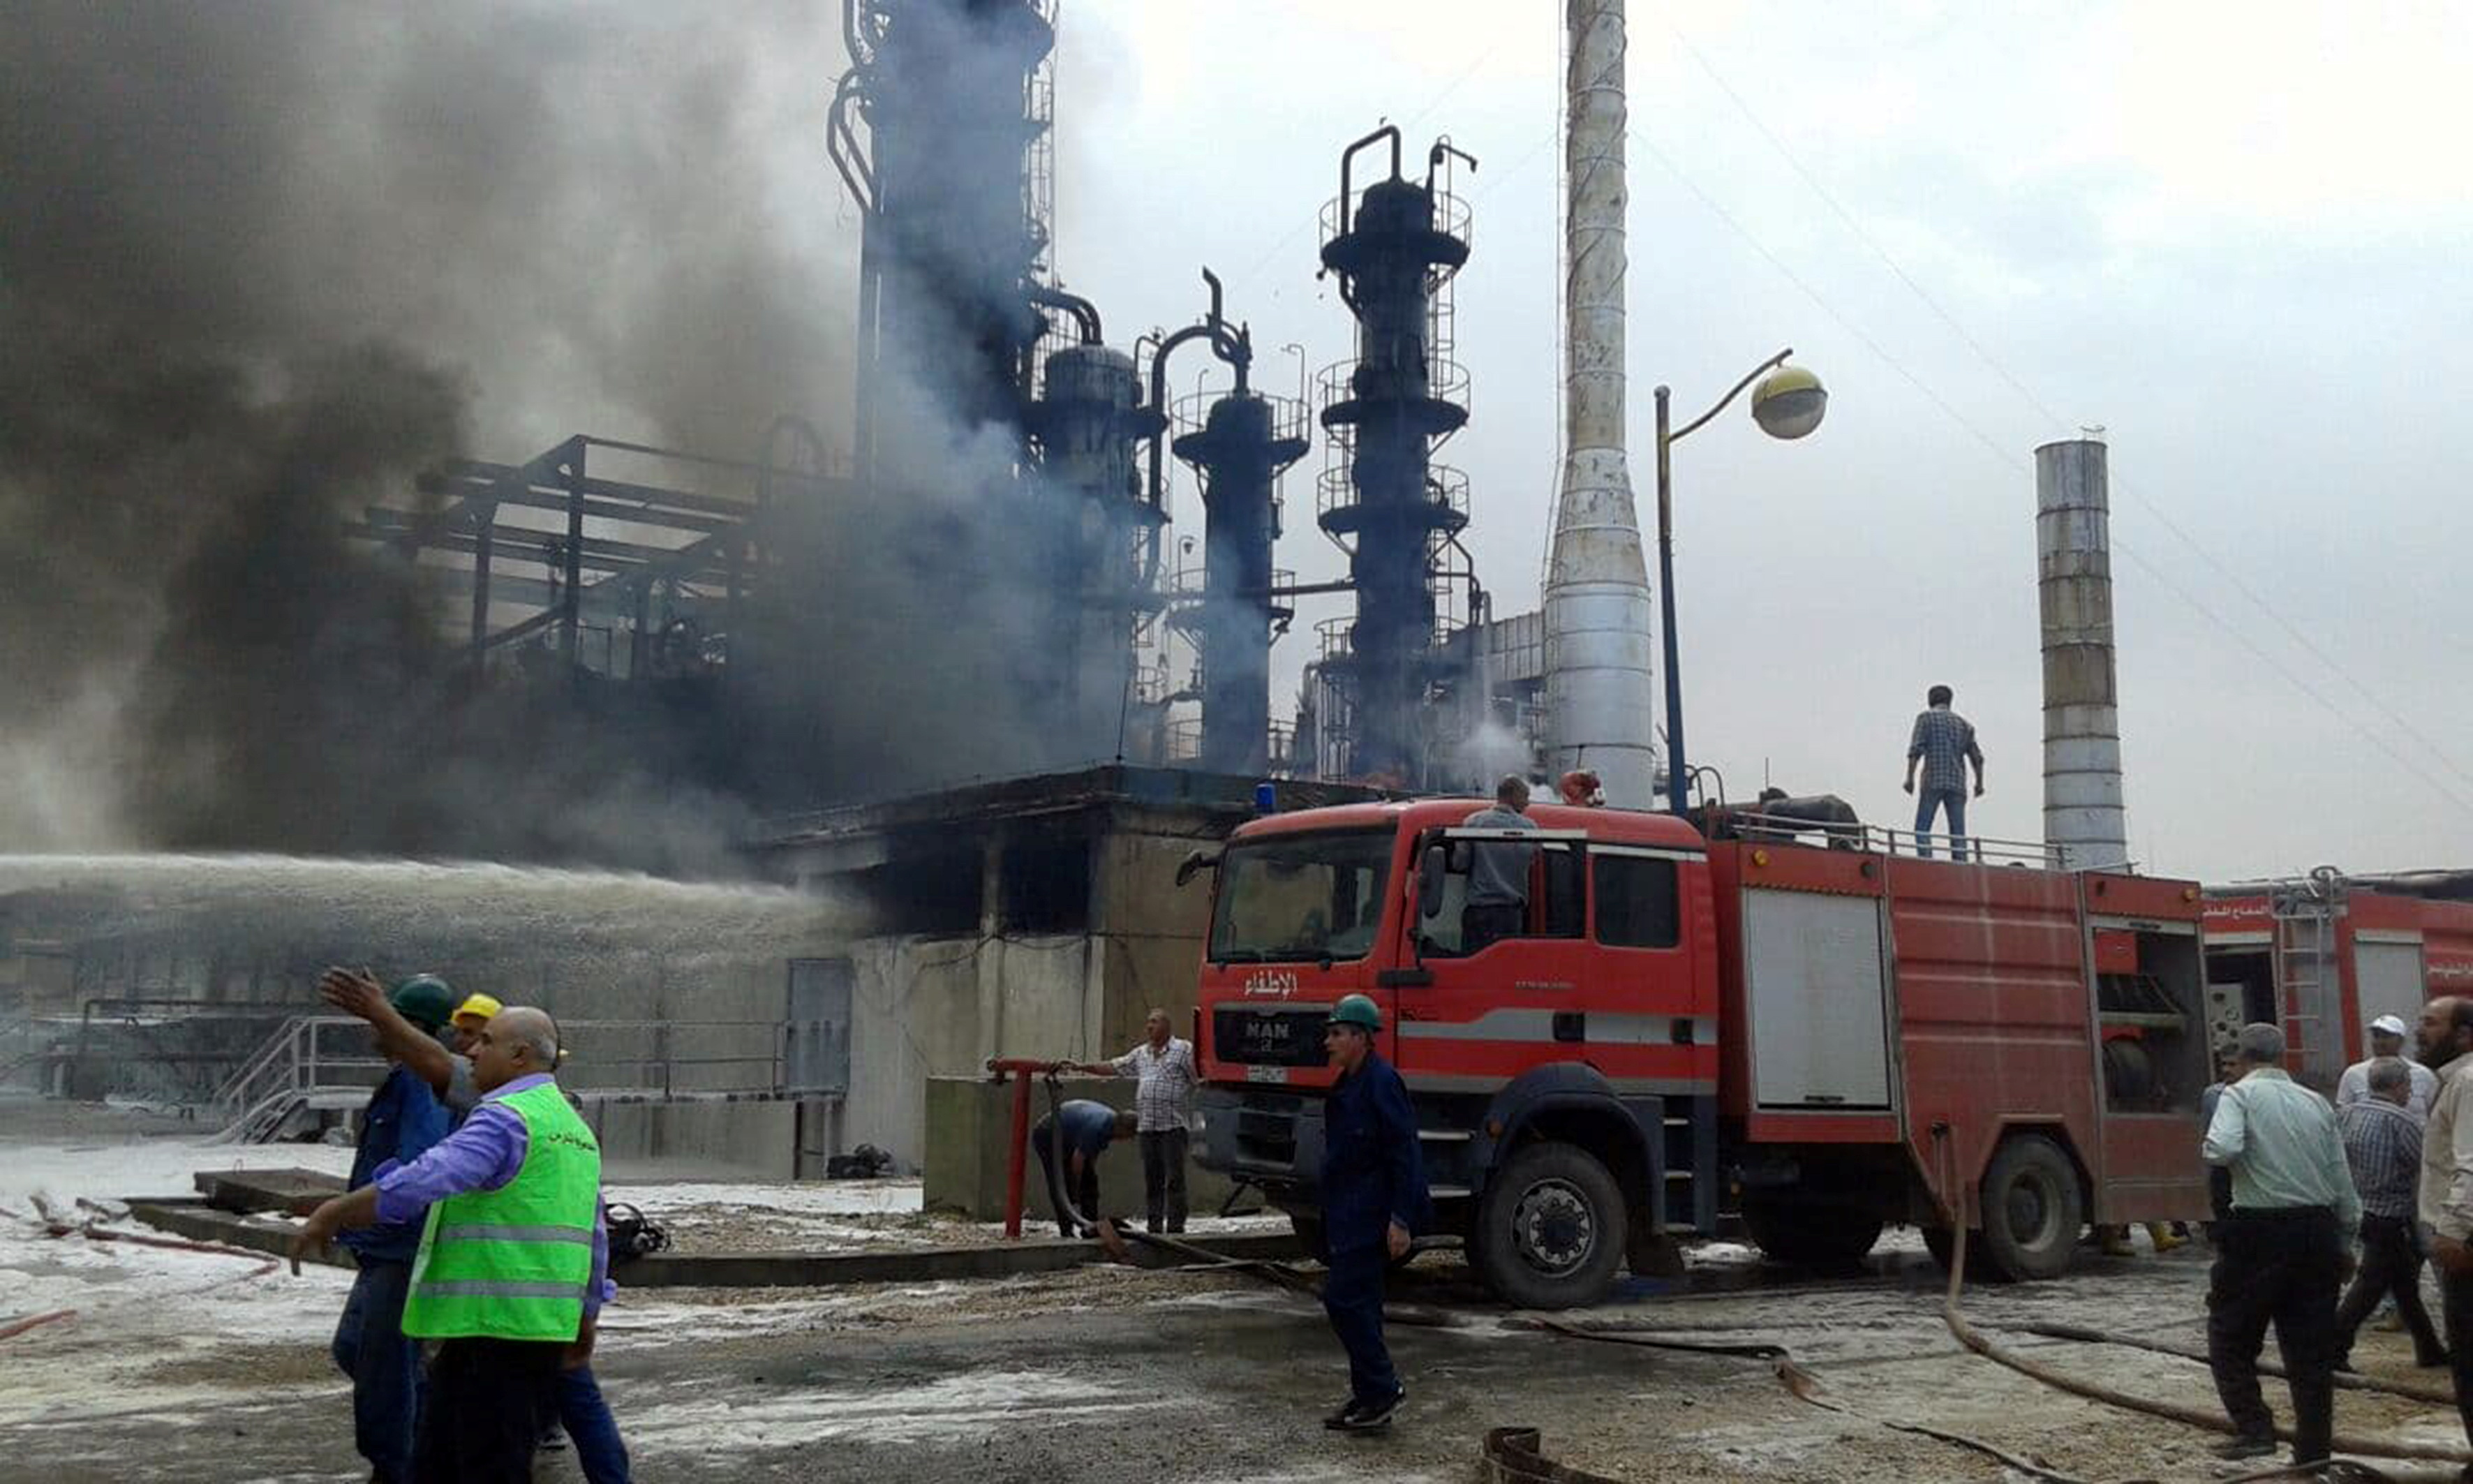 Firefighters try to put out a fire in main Homs refinery, Syria, in this handout picture released on May 9, 2021. SANA/Handout via REUTERS